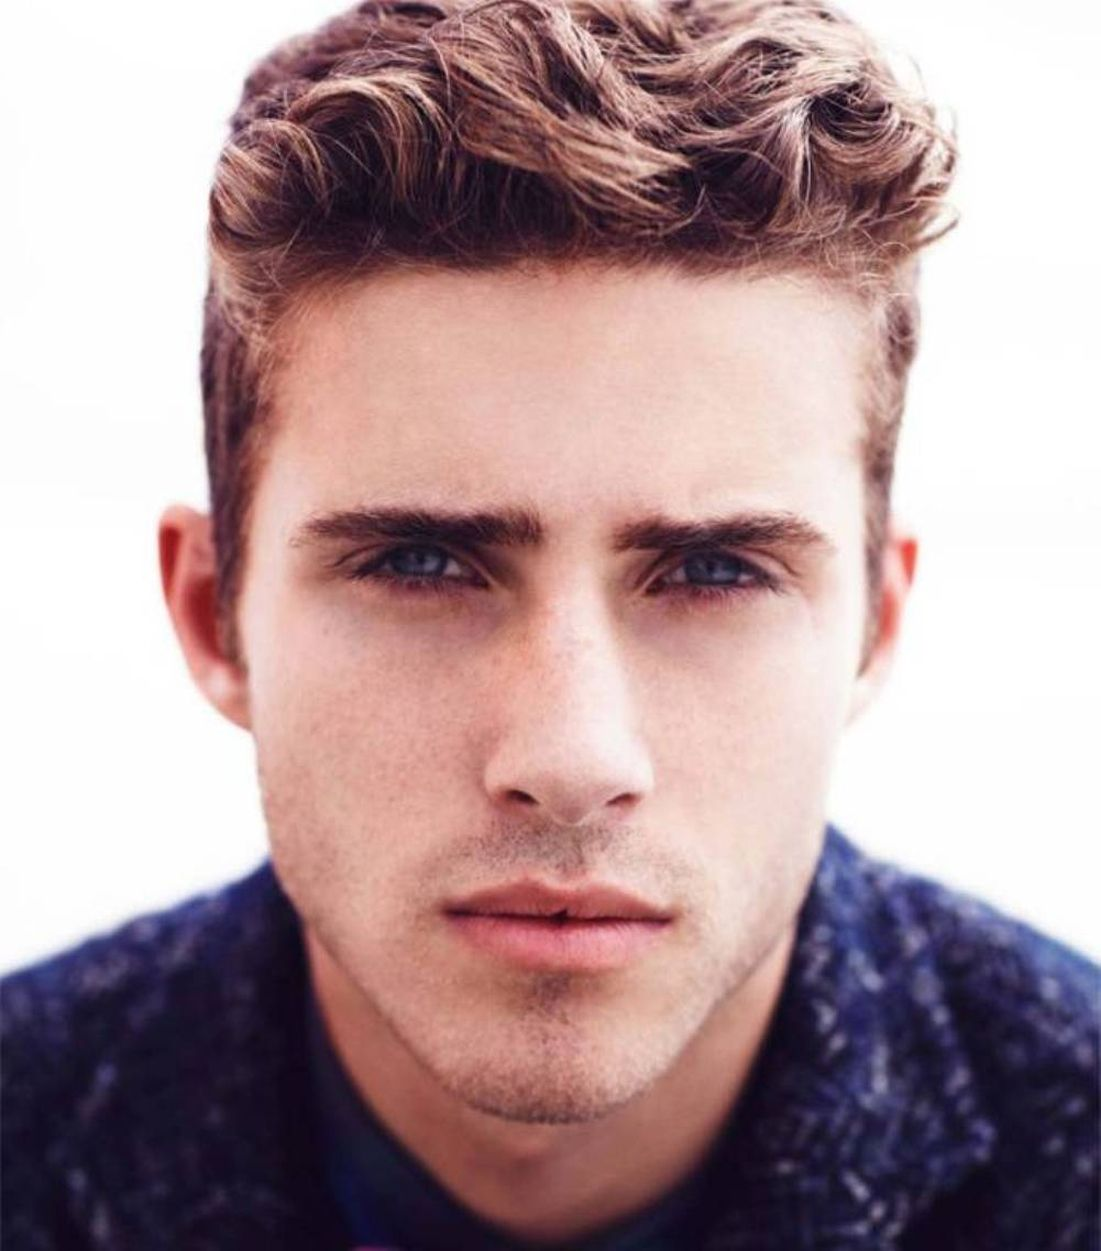 Long hairstyle men wavy fashion pinterest hairstyle men long mens hairstyles wavy short 2014 with a touch of undercut model with short sides winobraniefo Image collections